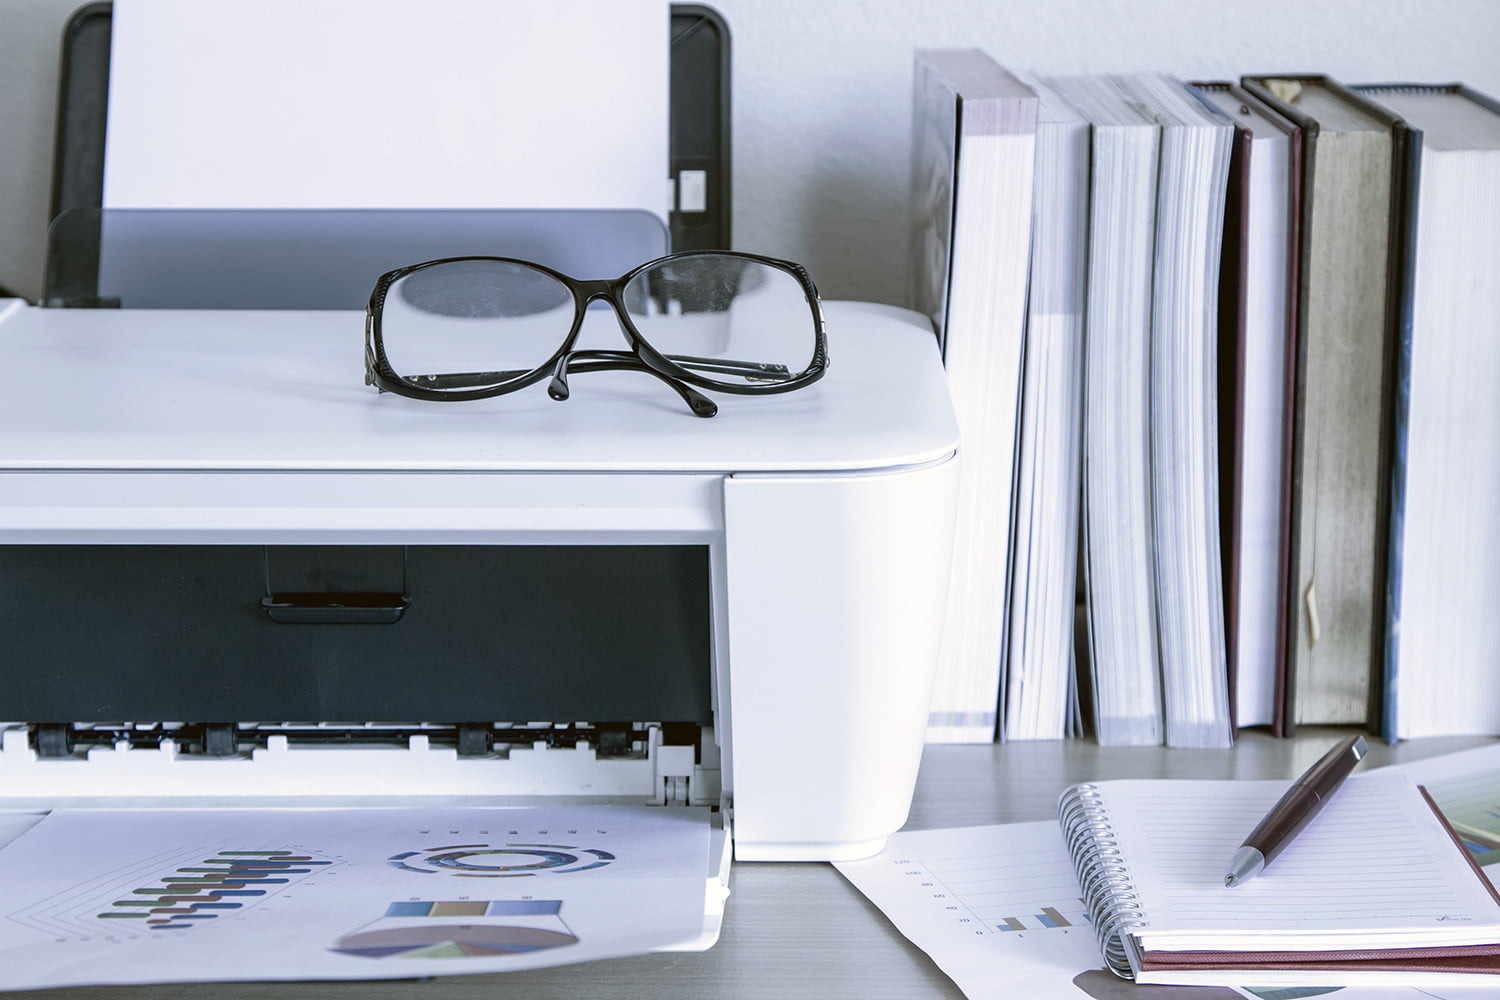 Image result for PRINTER BUYING GUIDE: HOW TO FIND THE BEST MODEL FOR YOU